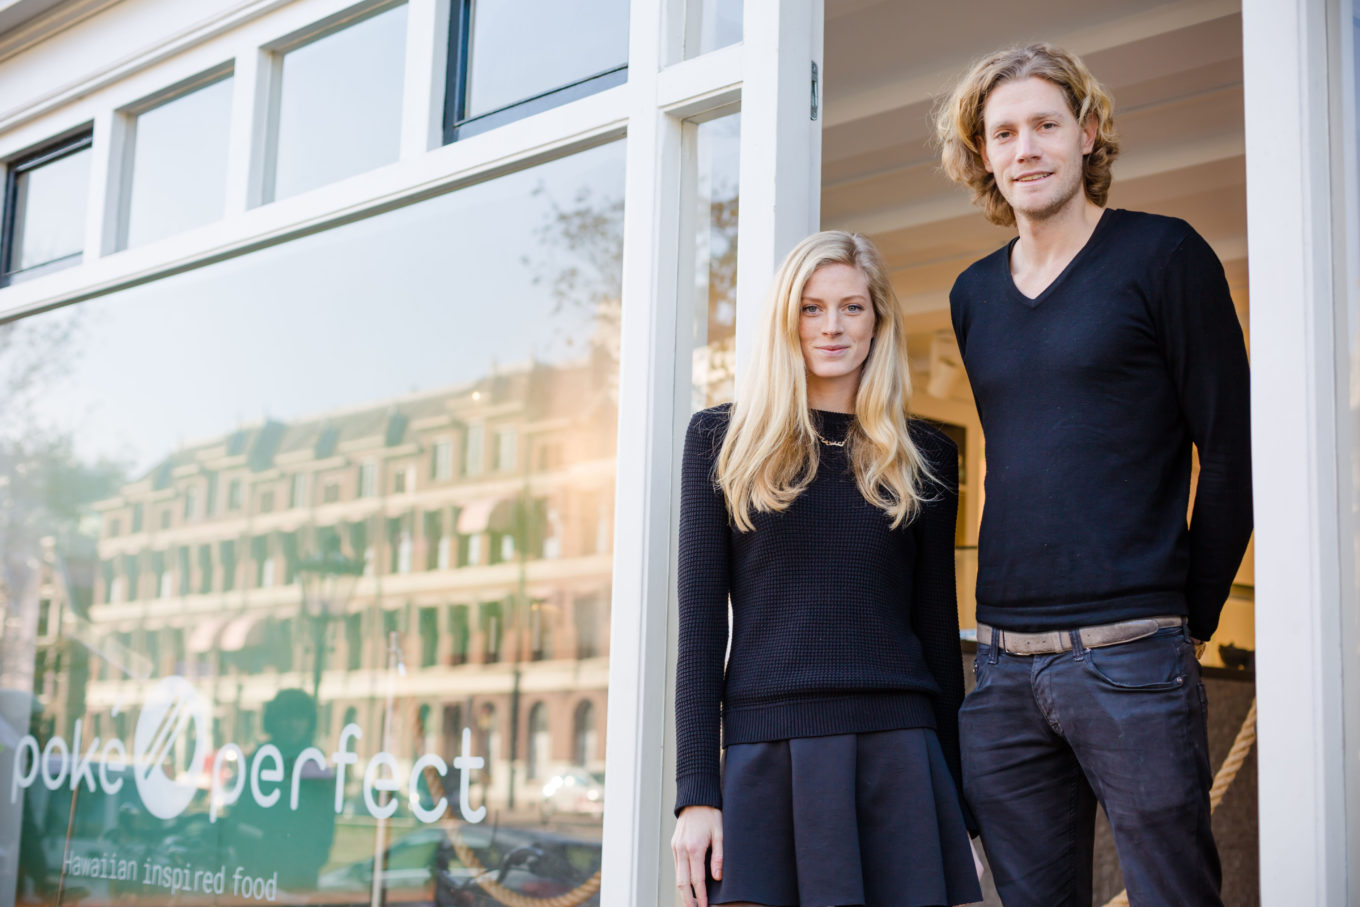 founder poke perfect - interview quinta witzel